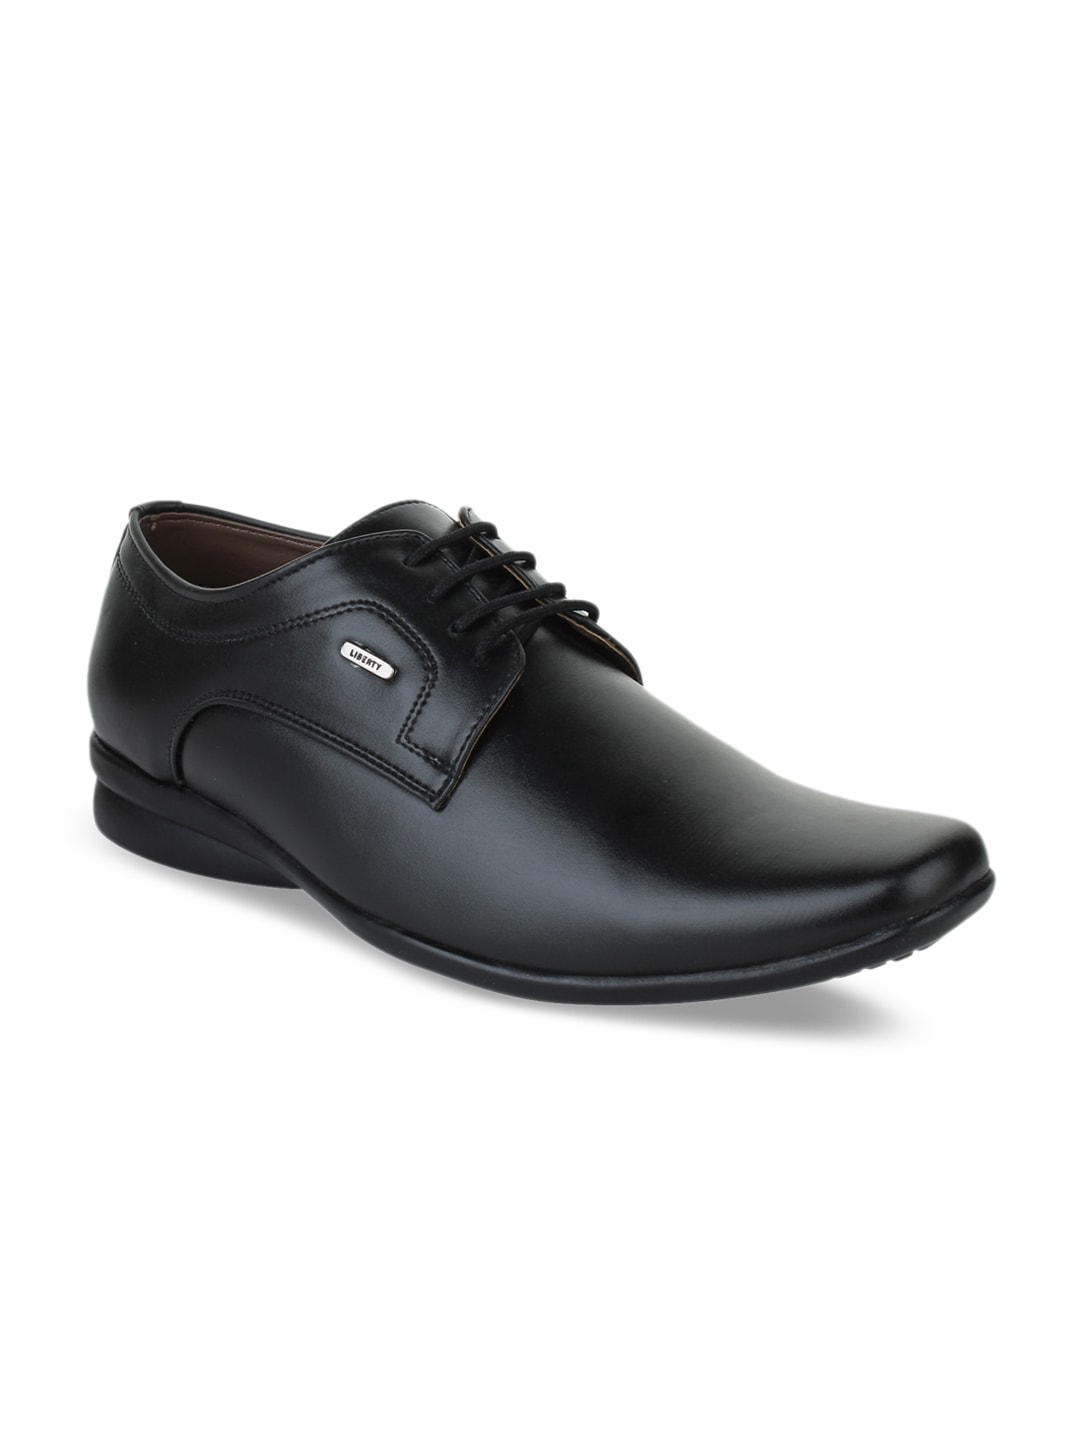 5ec0f675ab Liberty Shoes - Buy Liberty Shoes Online in India